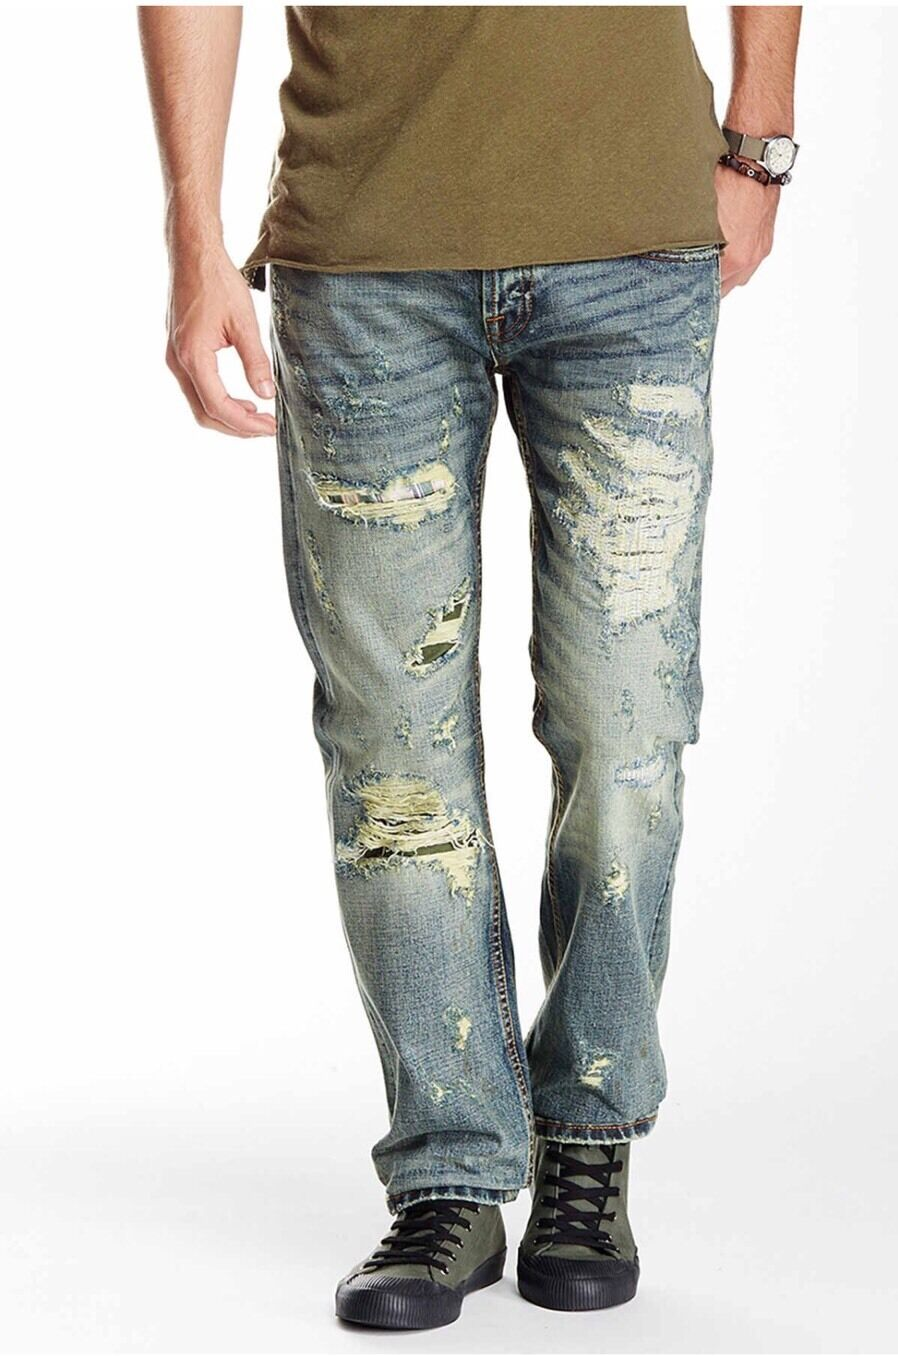 NWT  Men's Cult of Individuality Hagen Relaxed Jeans 31 X 34 Jelado